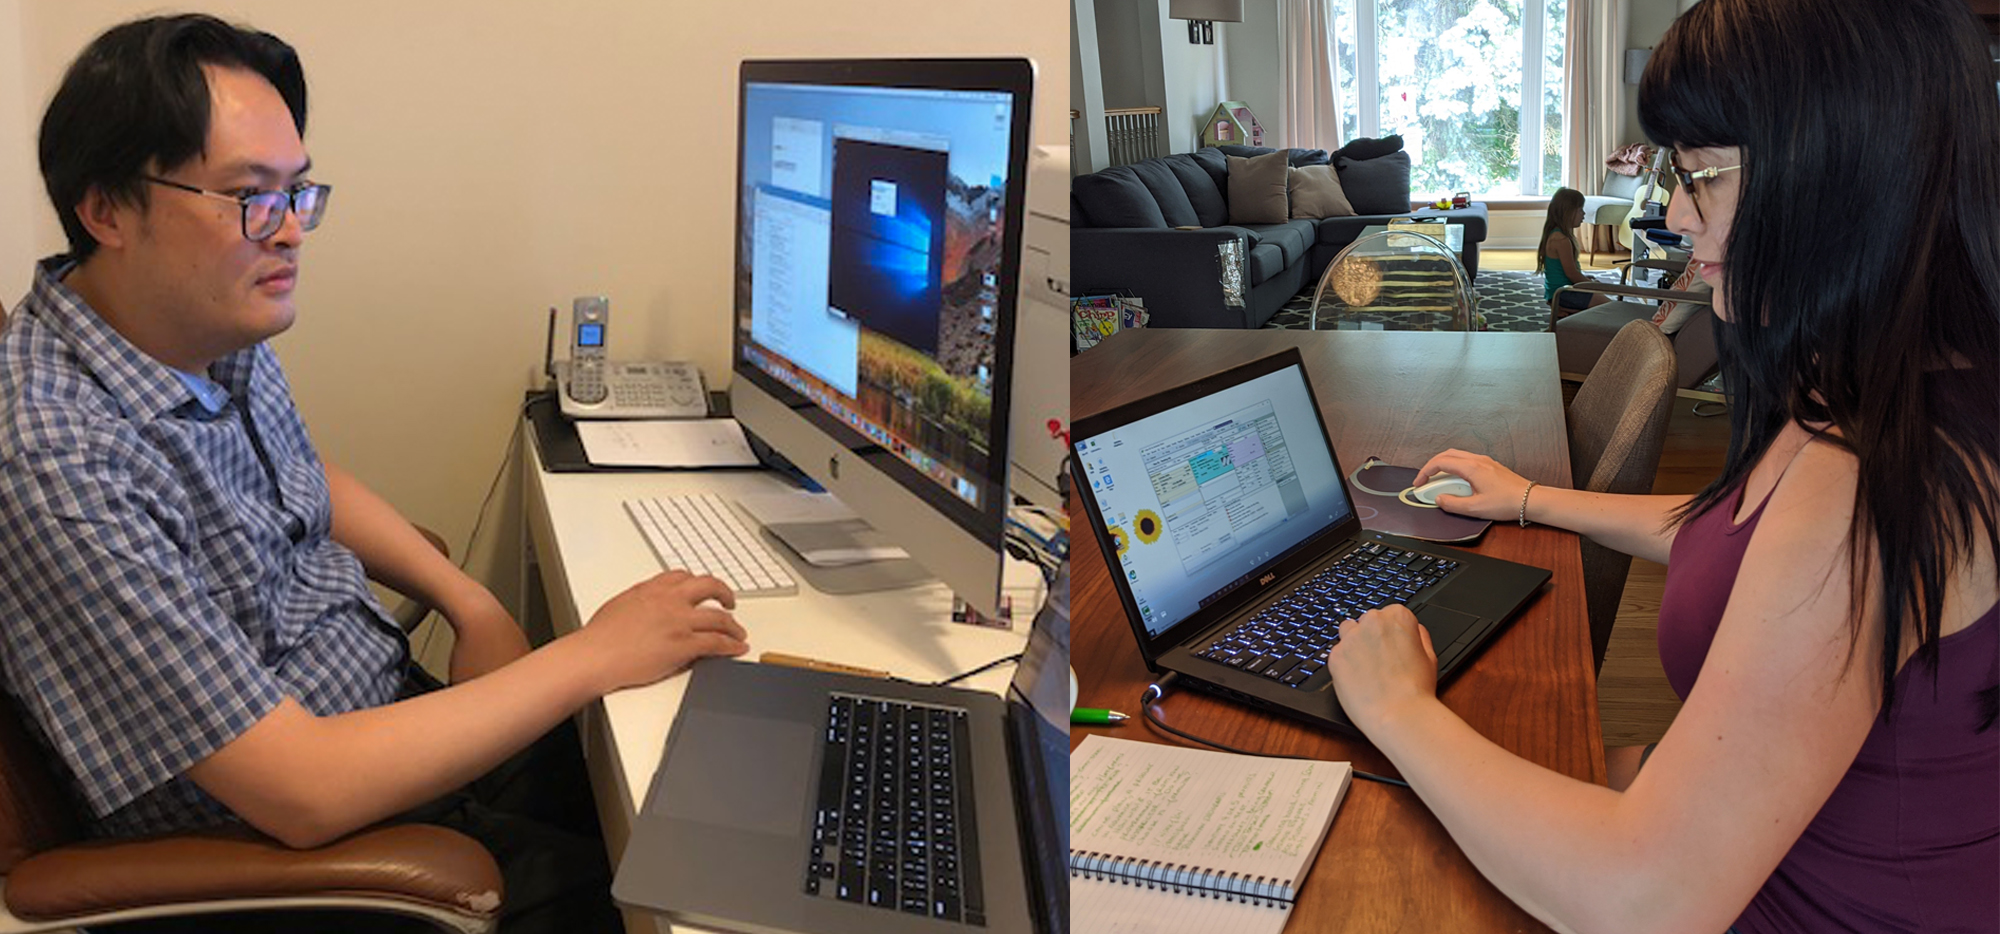 Two images. Left: Prof. William Wong looking at desktop computer. Right: Female student working on a laptop.